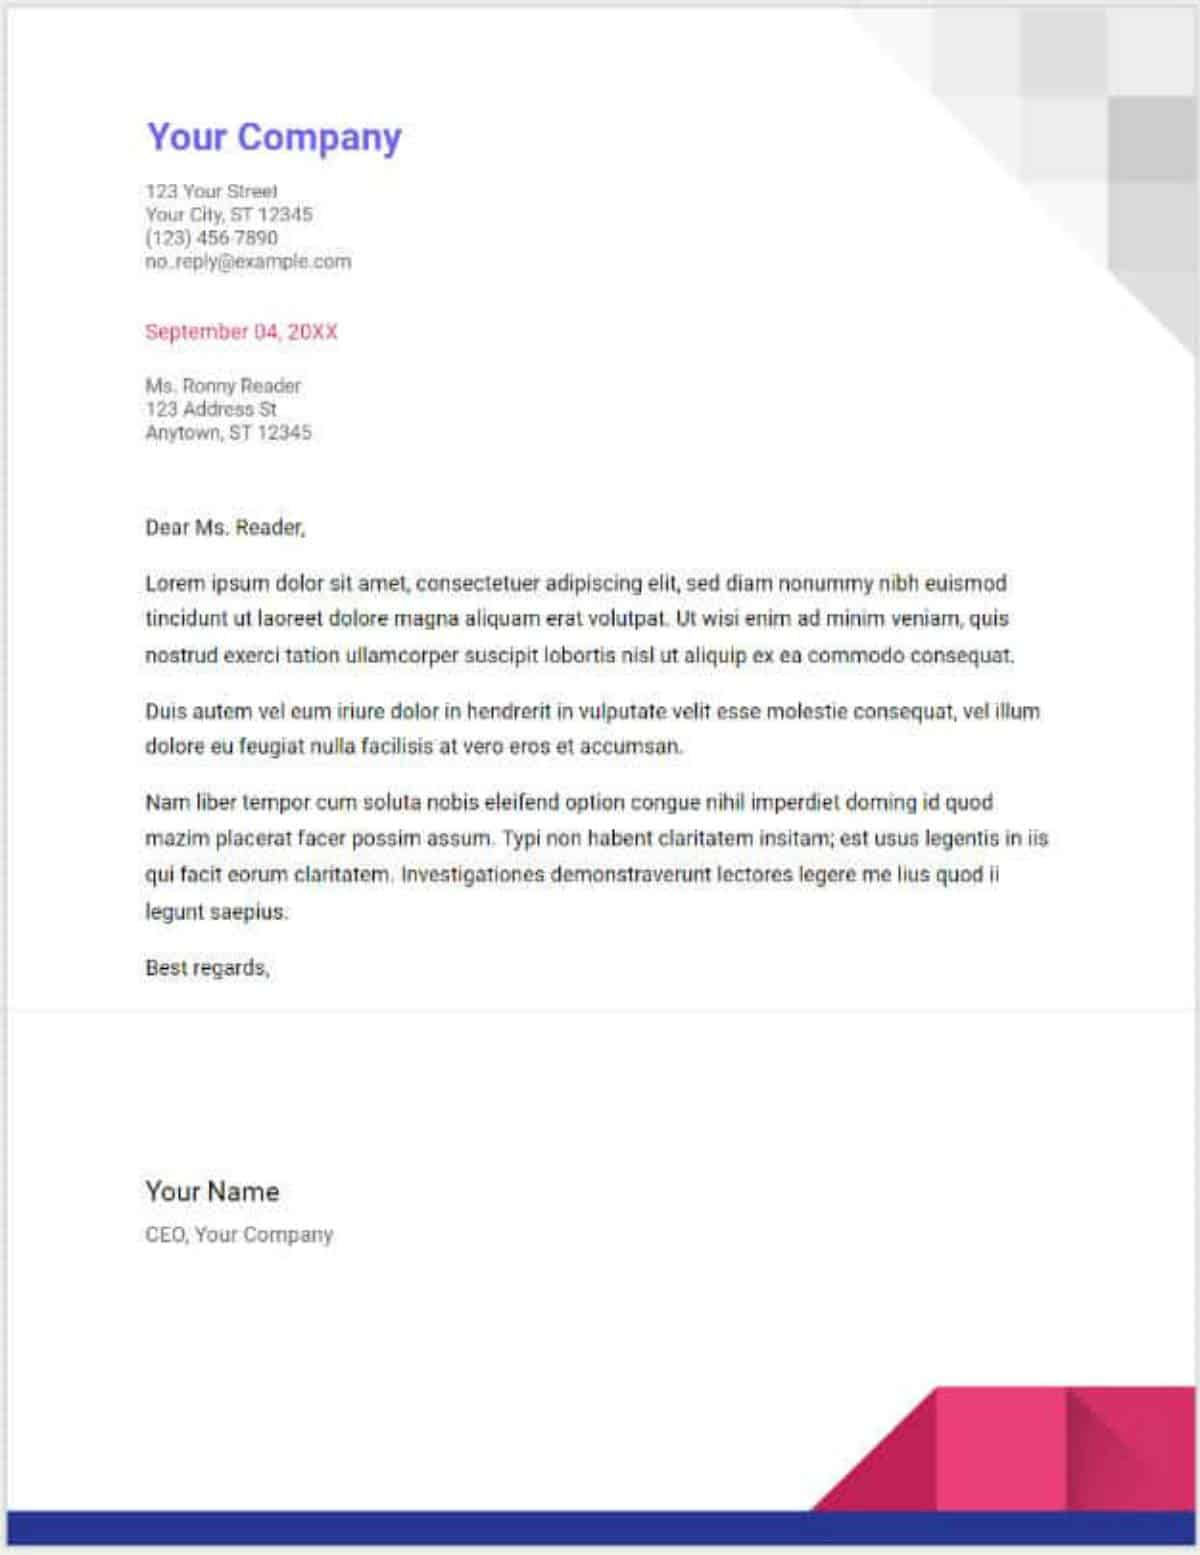 business letters | Google Docs Templates To Make Life Easier | Noobie | Google Docs templates | document